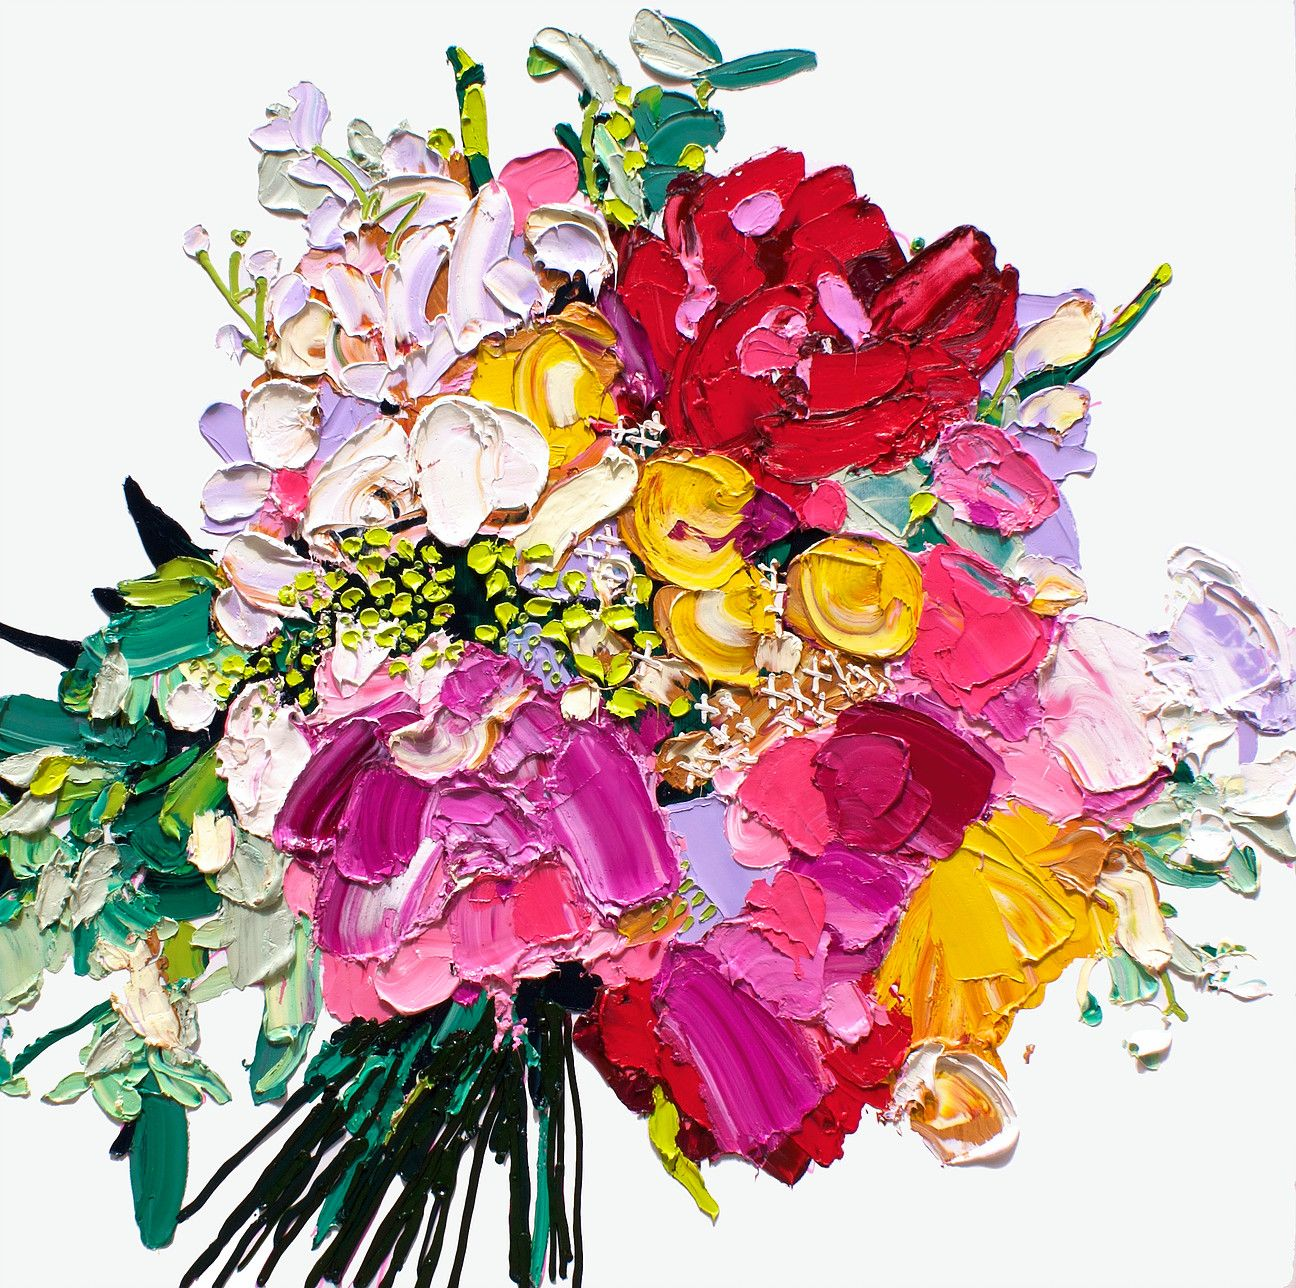 Inspired by perfectly arranged bouquets of flowers, the incredible  voluminous oil works of Sydney based artist capture their life and beauty  to a tee.